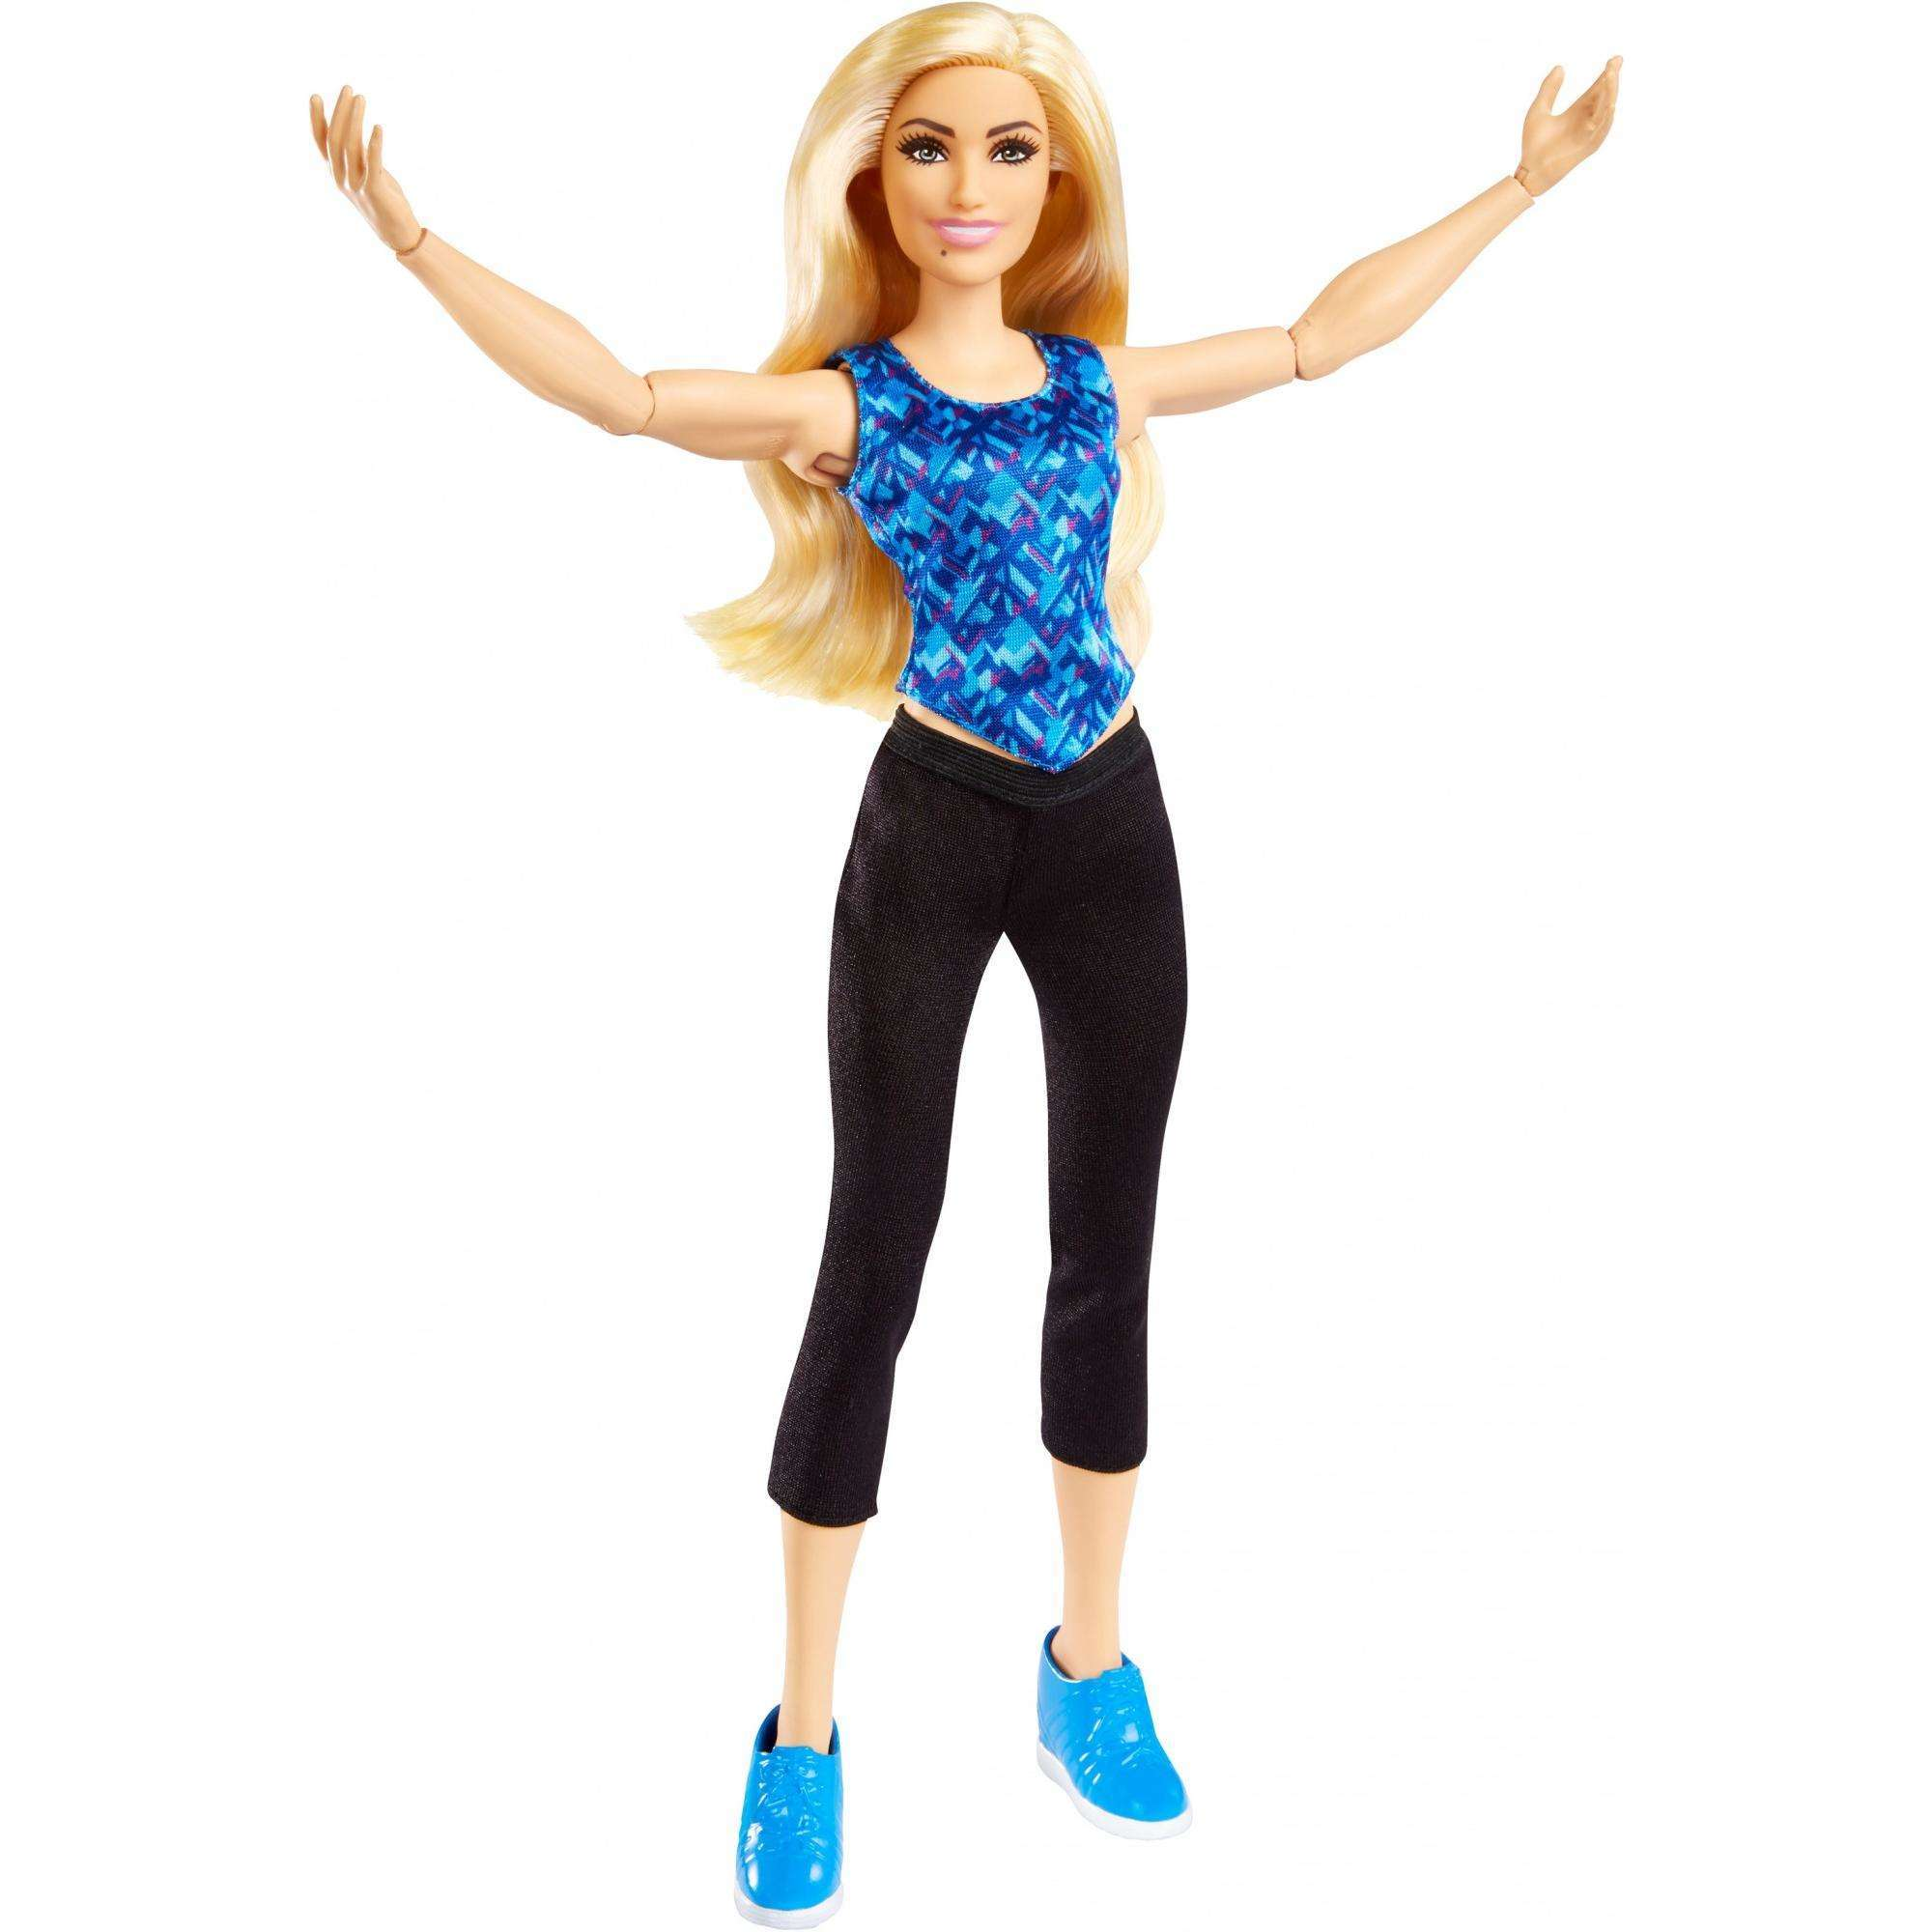 WWE Superstars Charlotte Flair 12-inch Posable Action-Fashion Doll